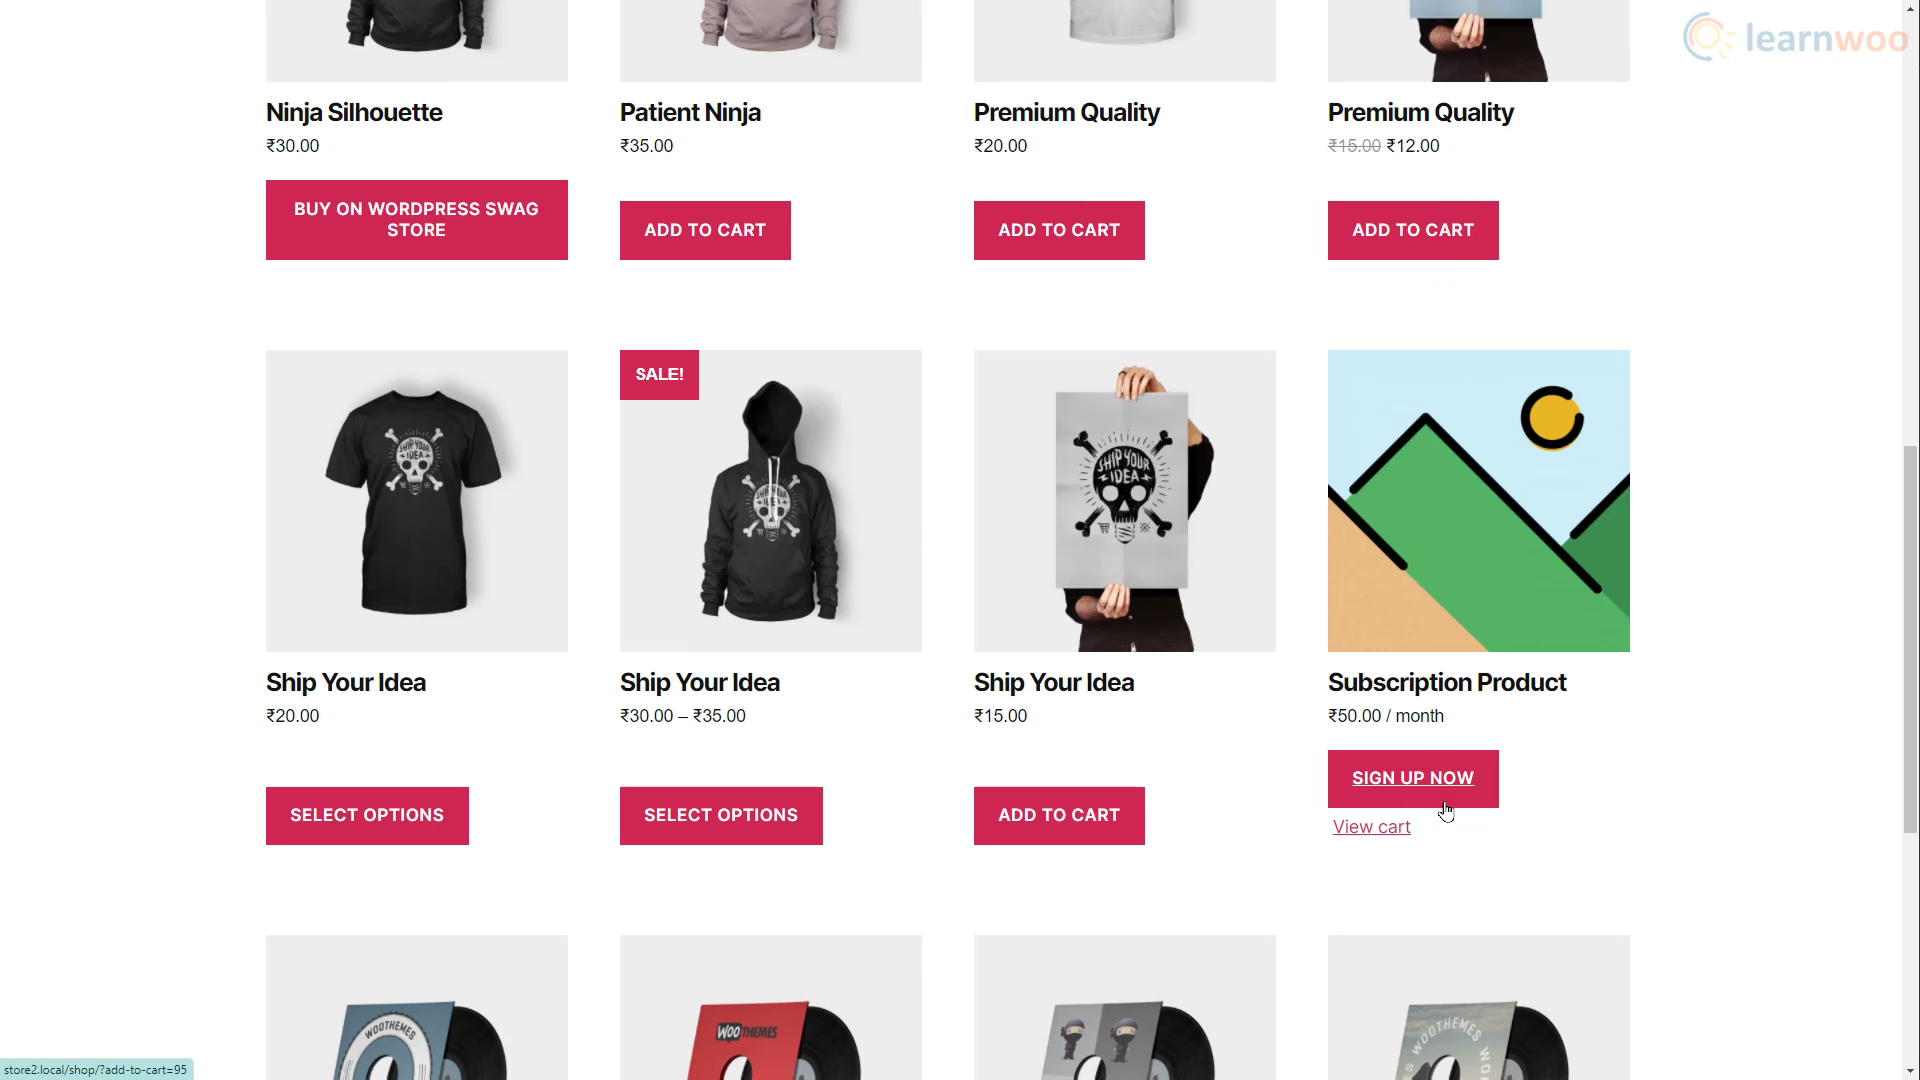 WooCommerce subscription product